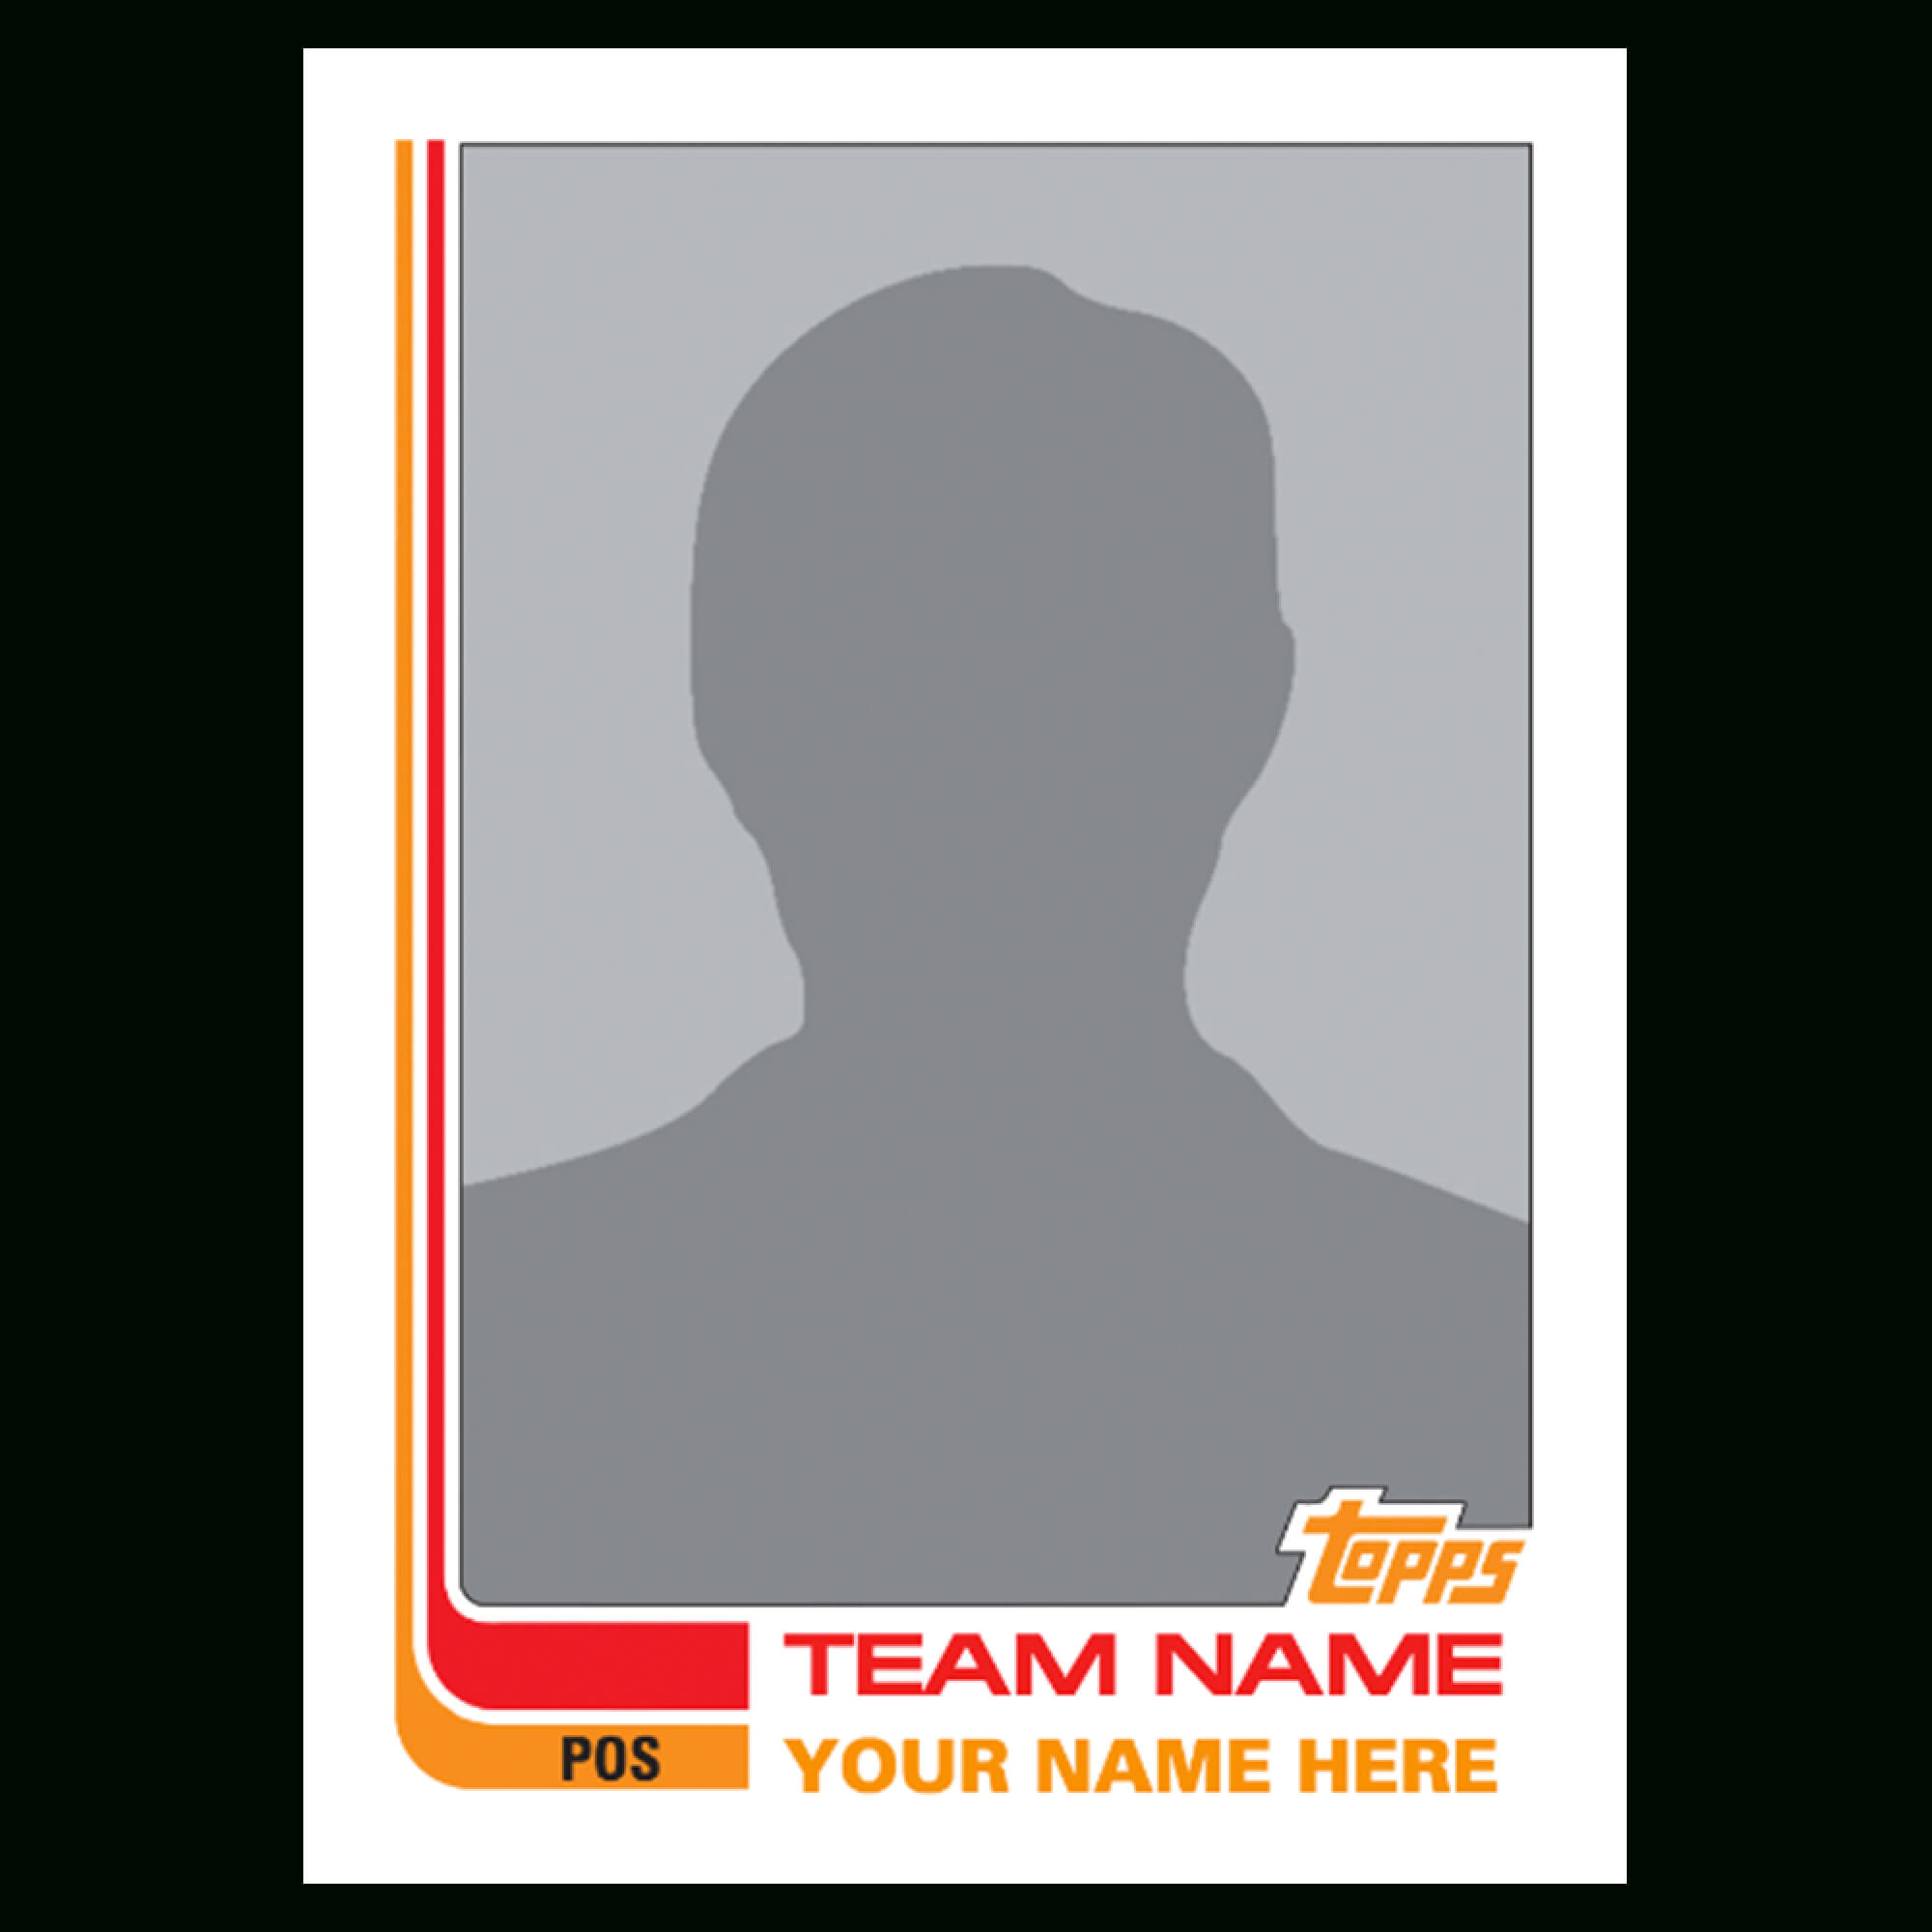 Baseball Trading Card Templates Clipart Images Gallery For Inside Trading Cards Templates Free Download